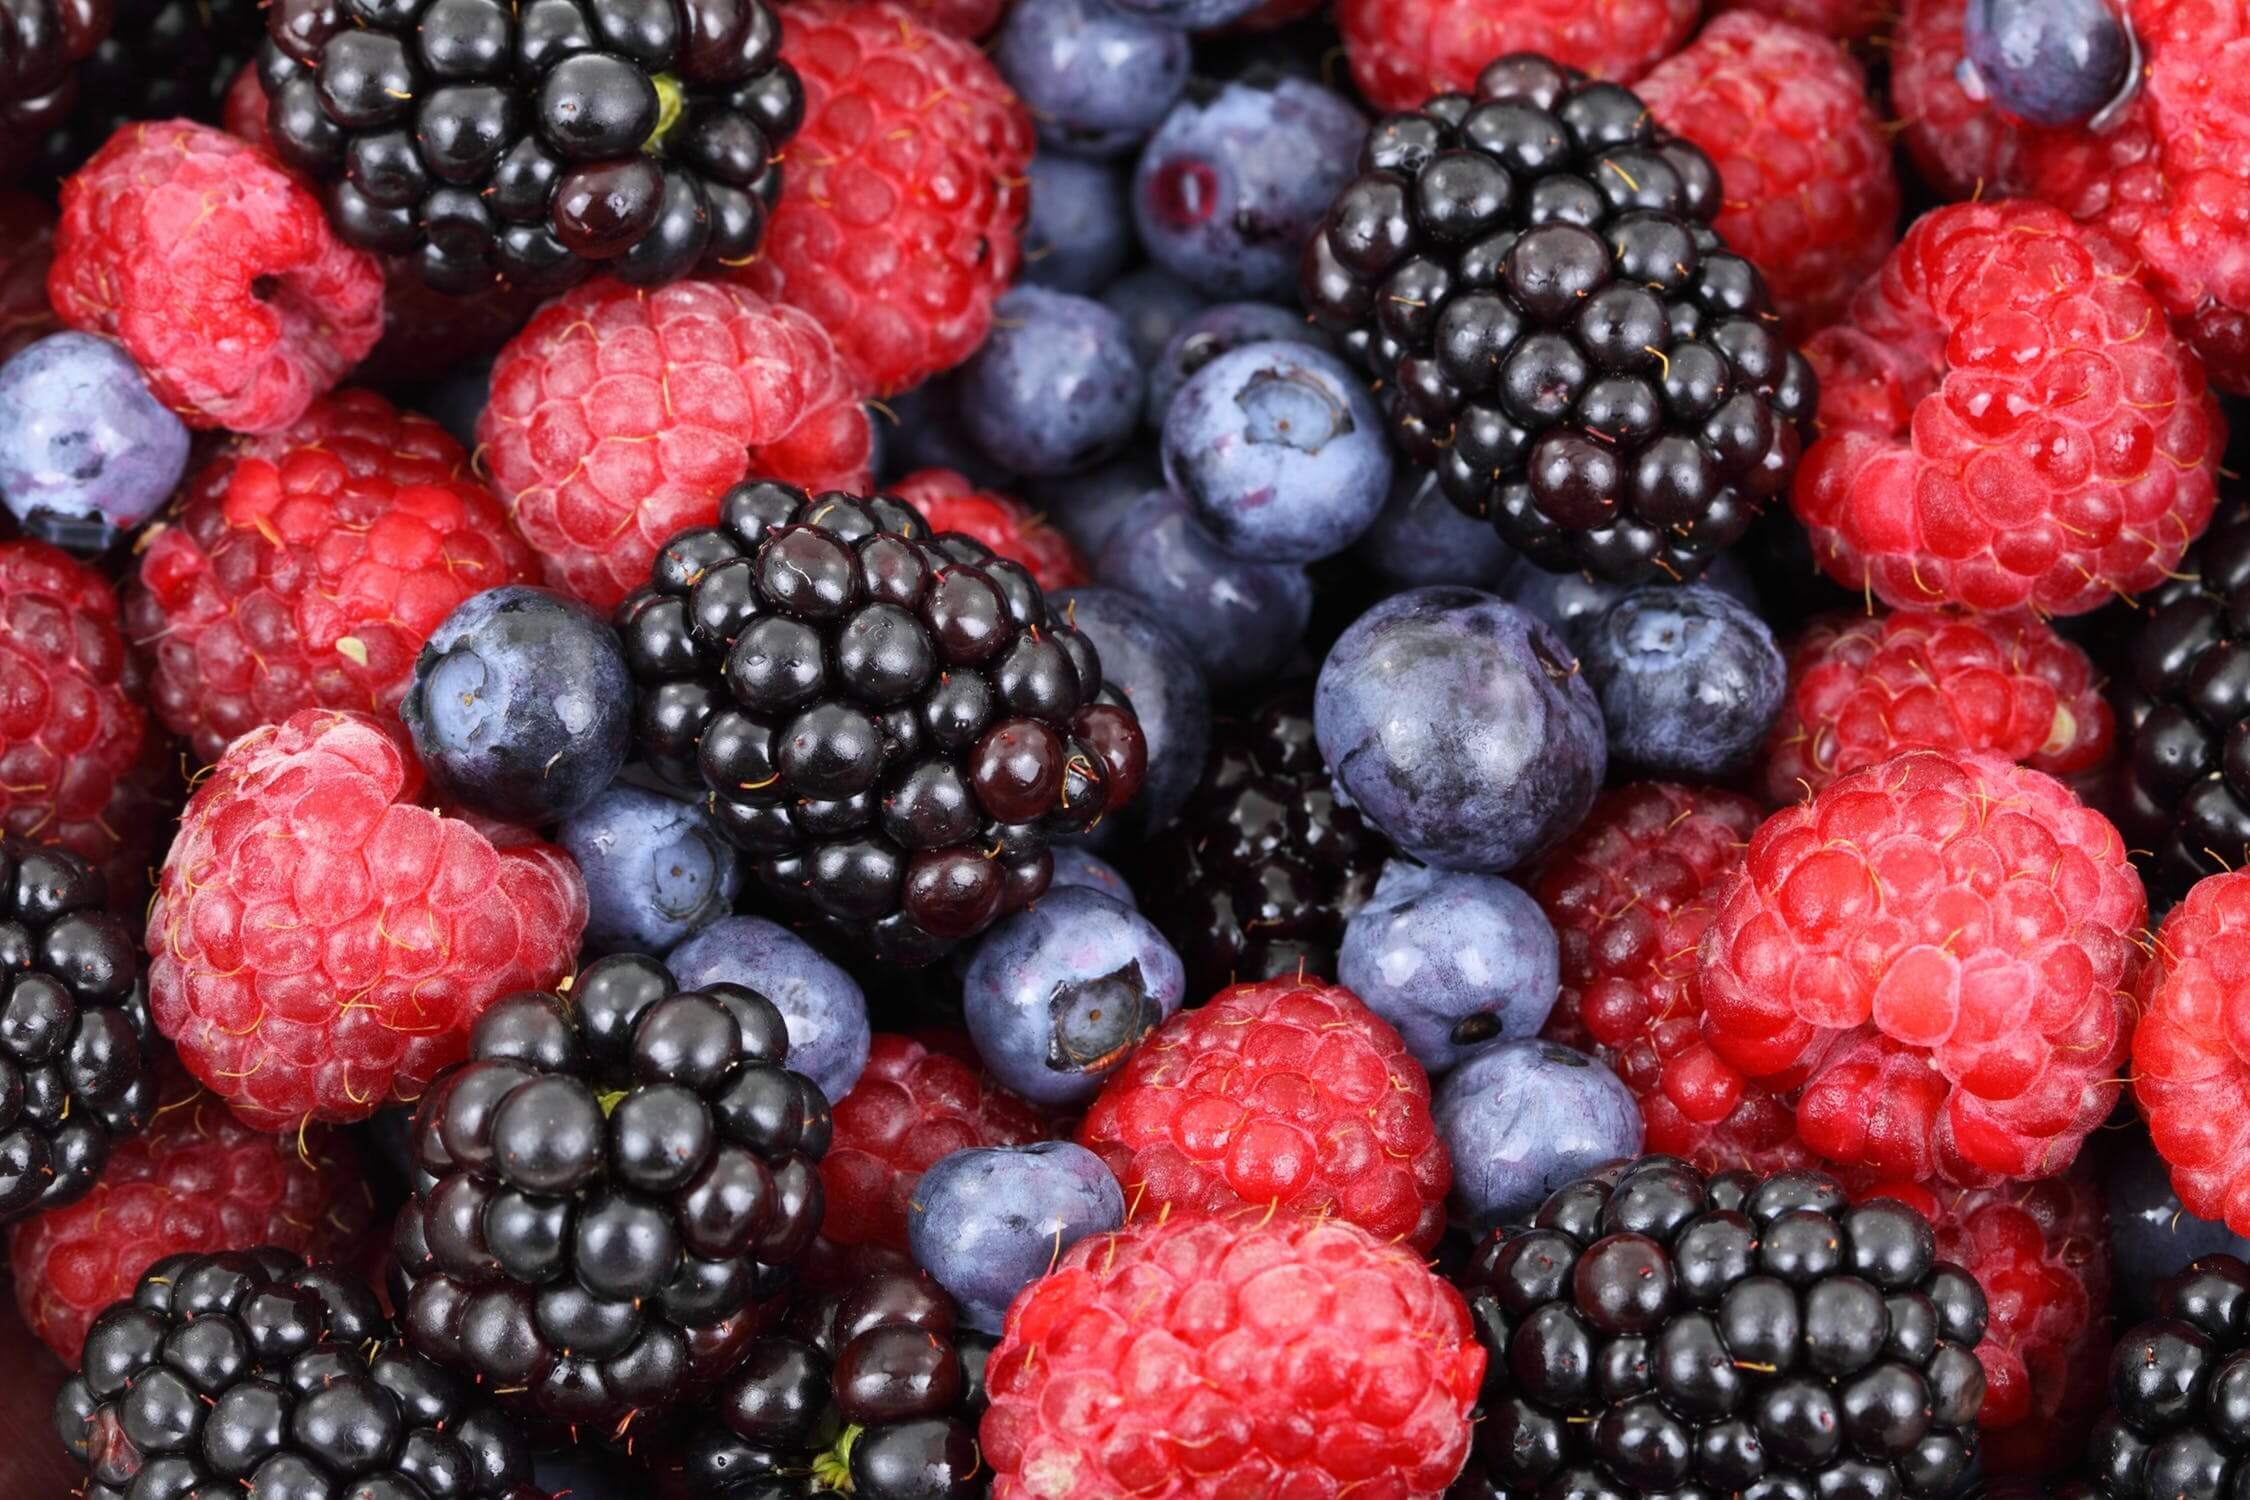 Fresh berries. Berries are heart healthy options anyone can add to their diet.